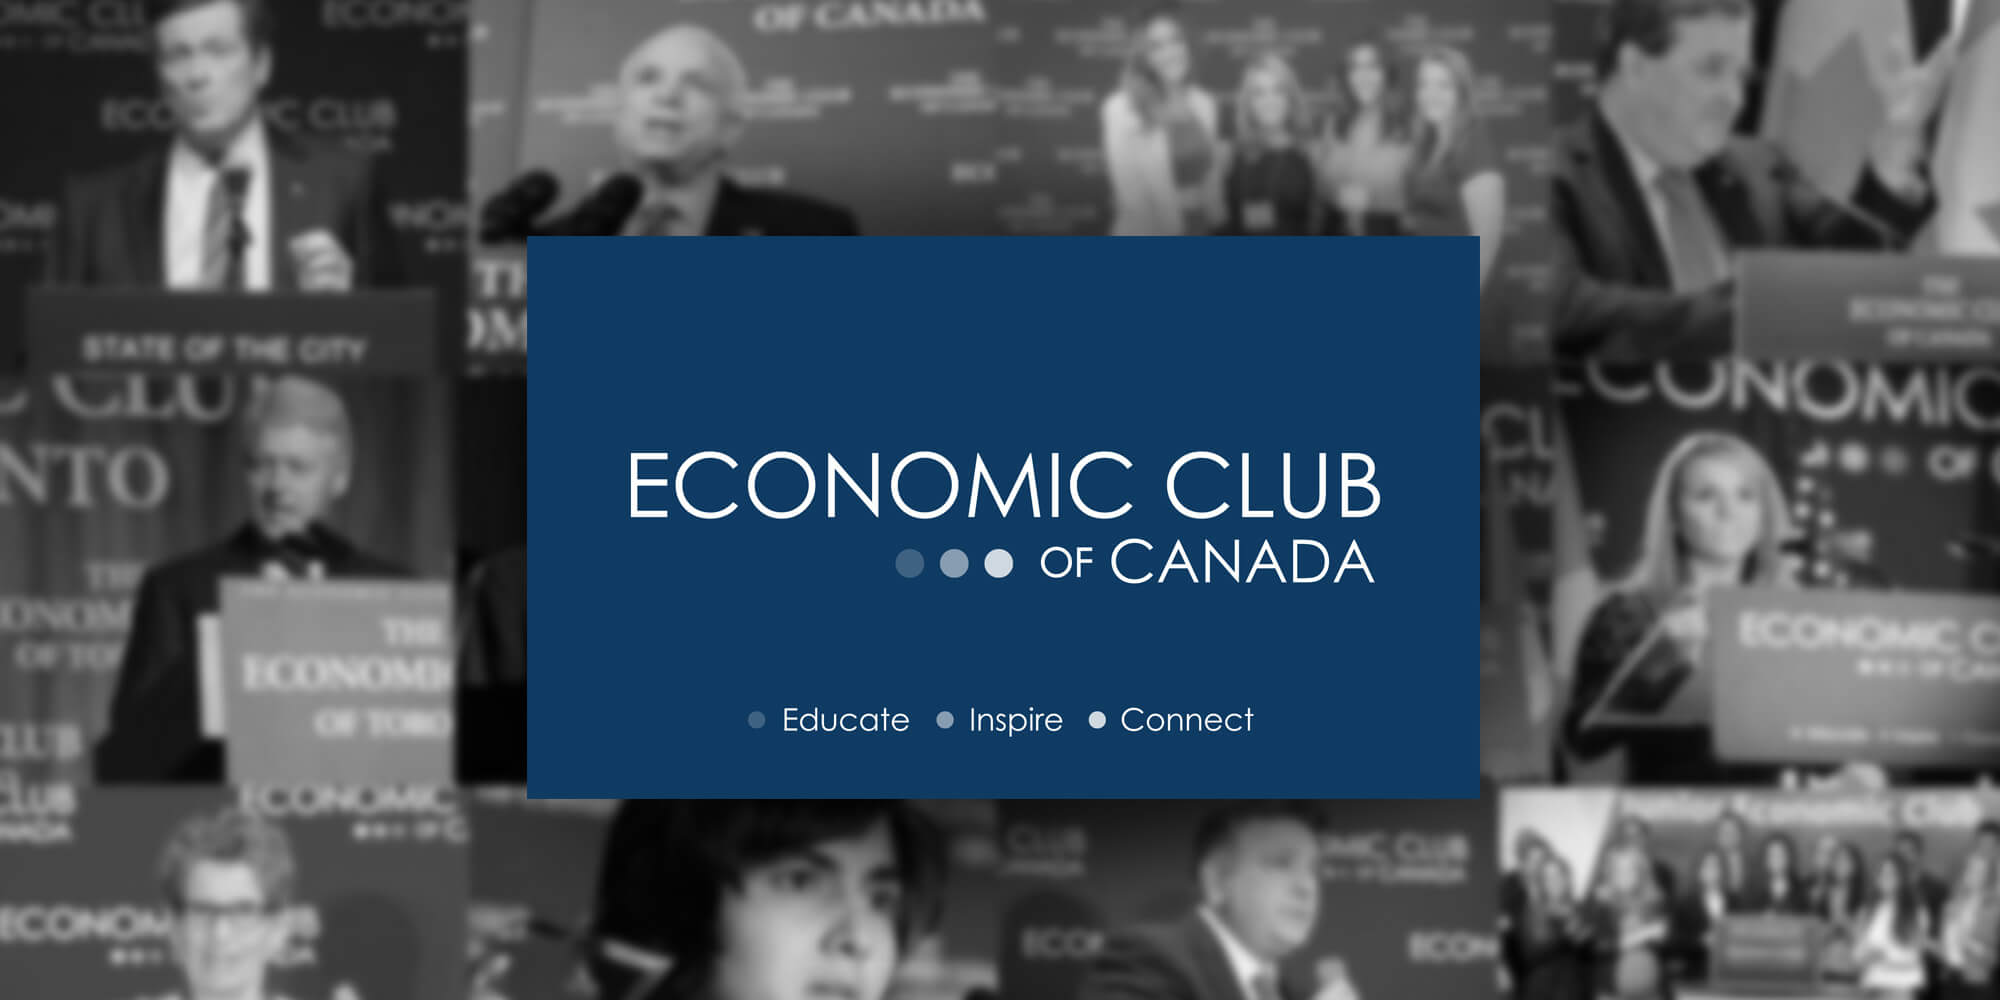 Economic Club of Canada - Educate. Inspire. Connect.